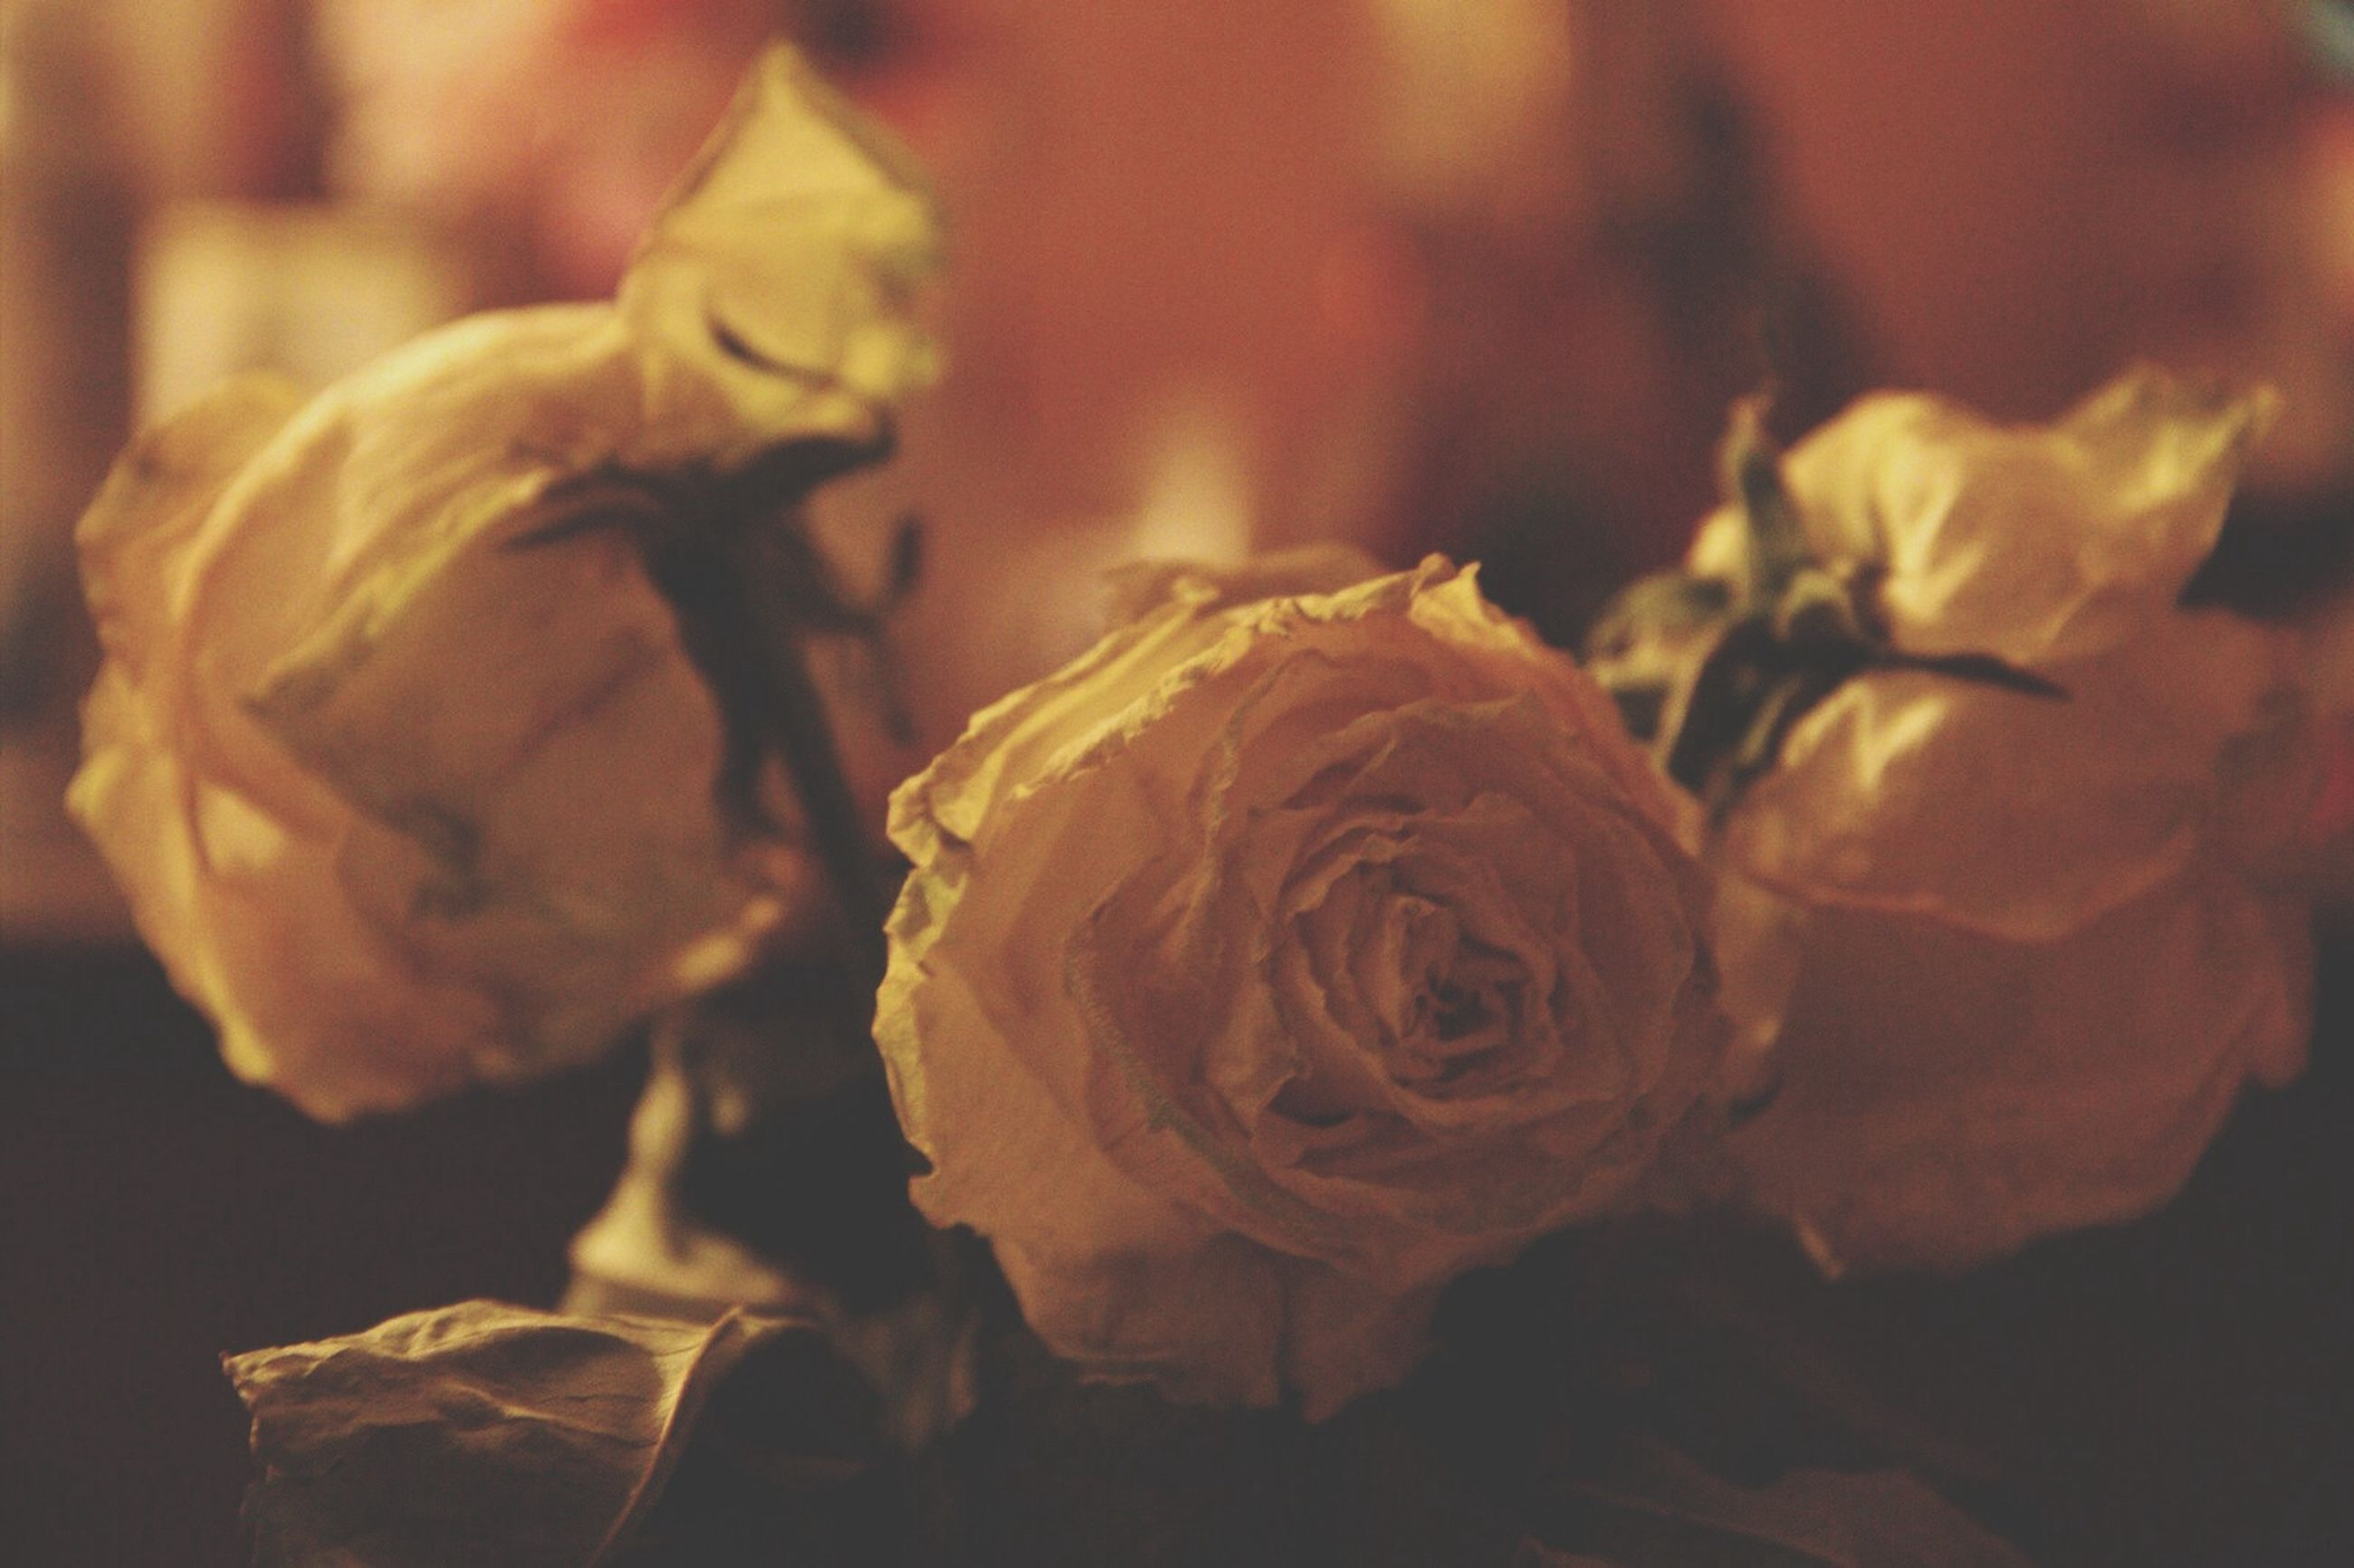 flower, close-up, petal, rose - flower, freshness, focus on foreground, flower head, fragility, indoors, yellow, beauty in nature, nature, selective focus, no people, growth, single flower, rose, plant, day, blooming